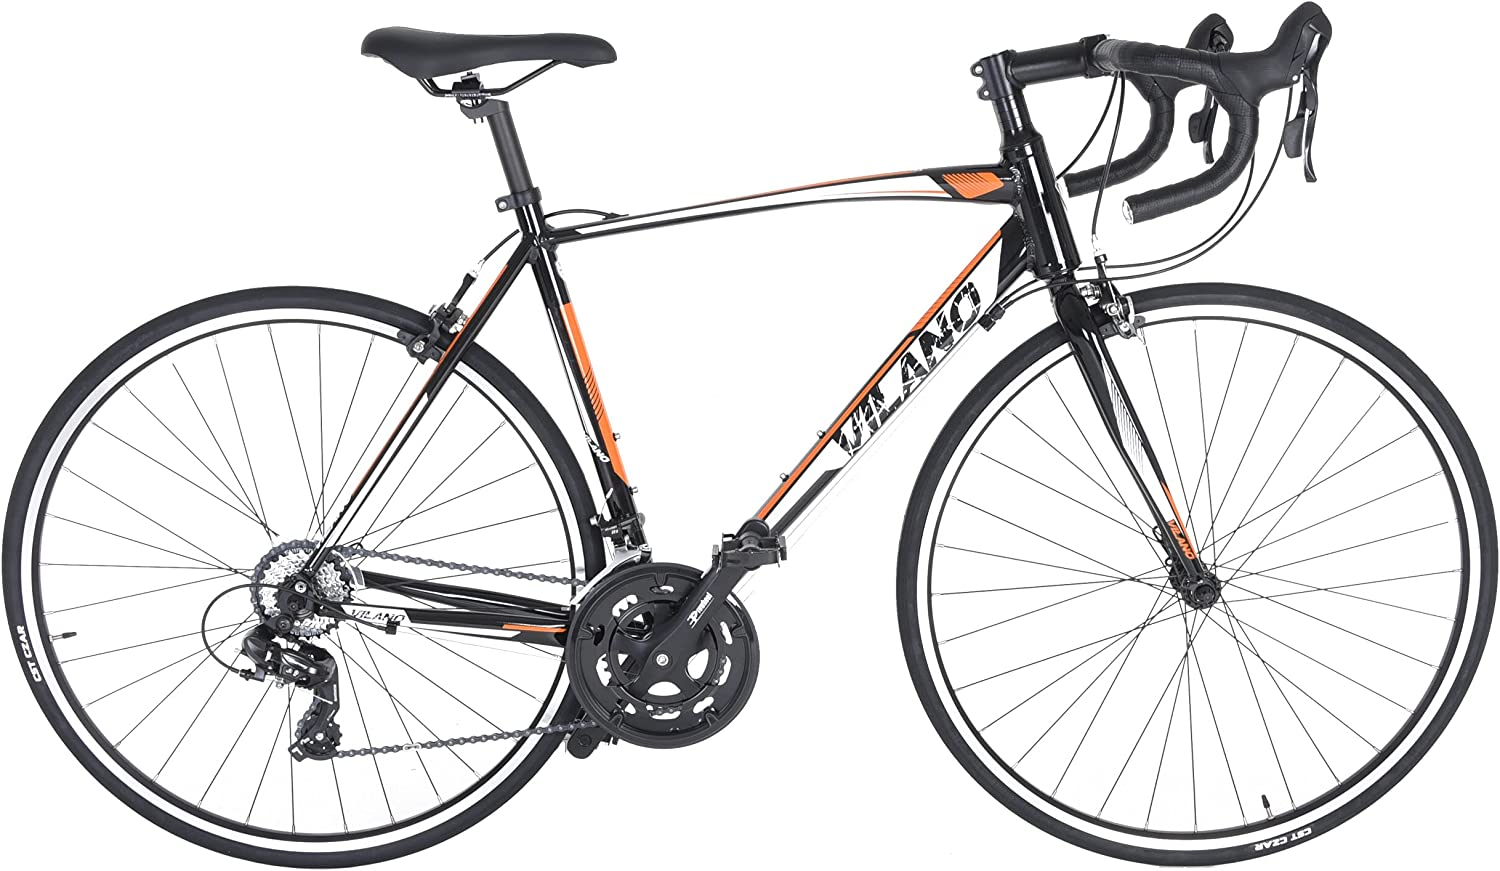 Vilano Shadow 3.0 Road Bikes with Integrated Shifters